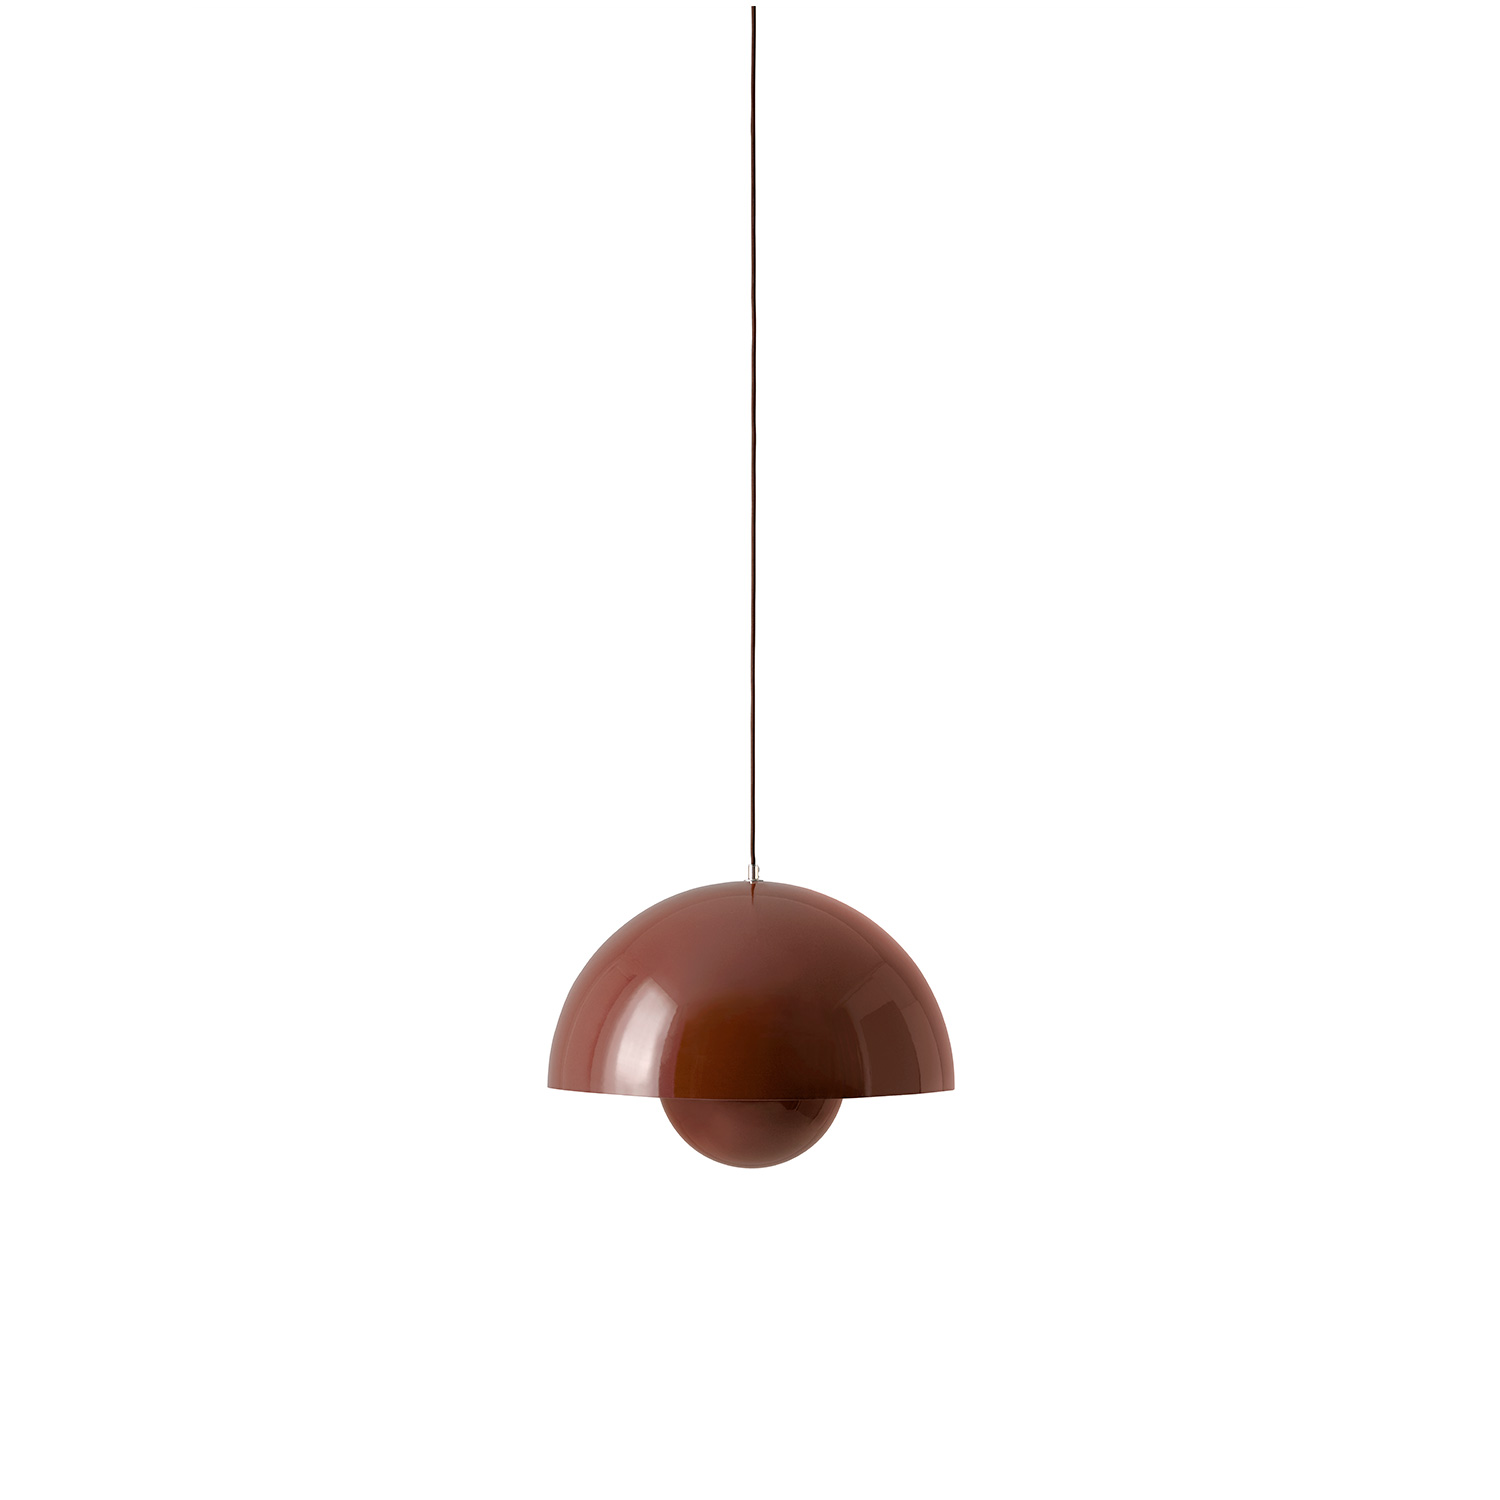 Bilde av &Tradition-Flowerpot Pendant VP2, Reddish brown